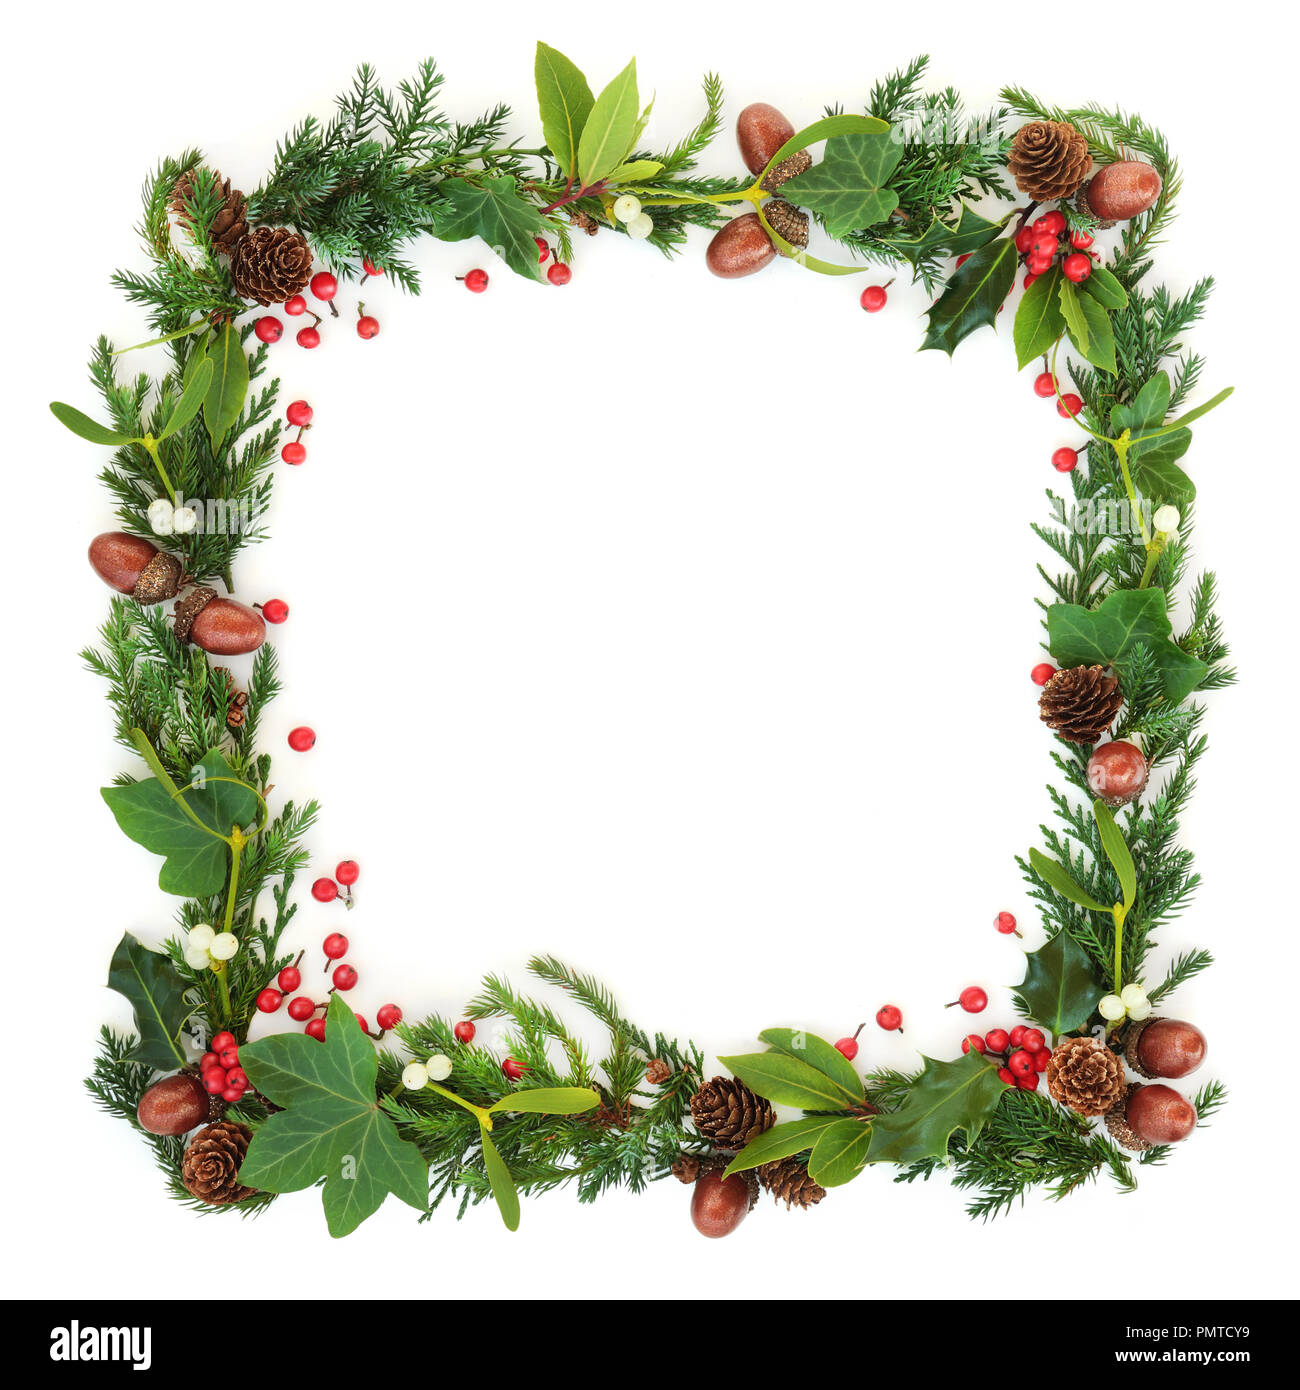 Wreath Border High Resolution Stock Photography And Images Alamy